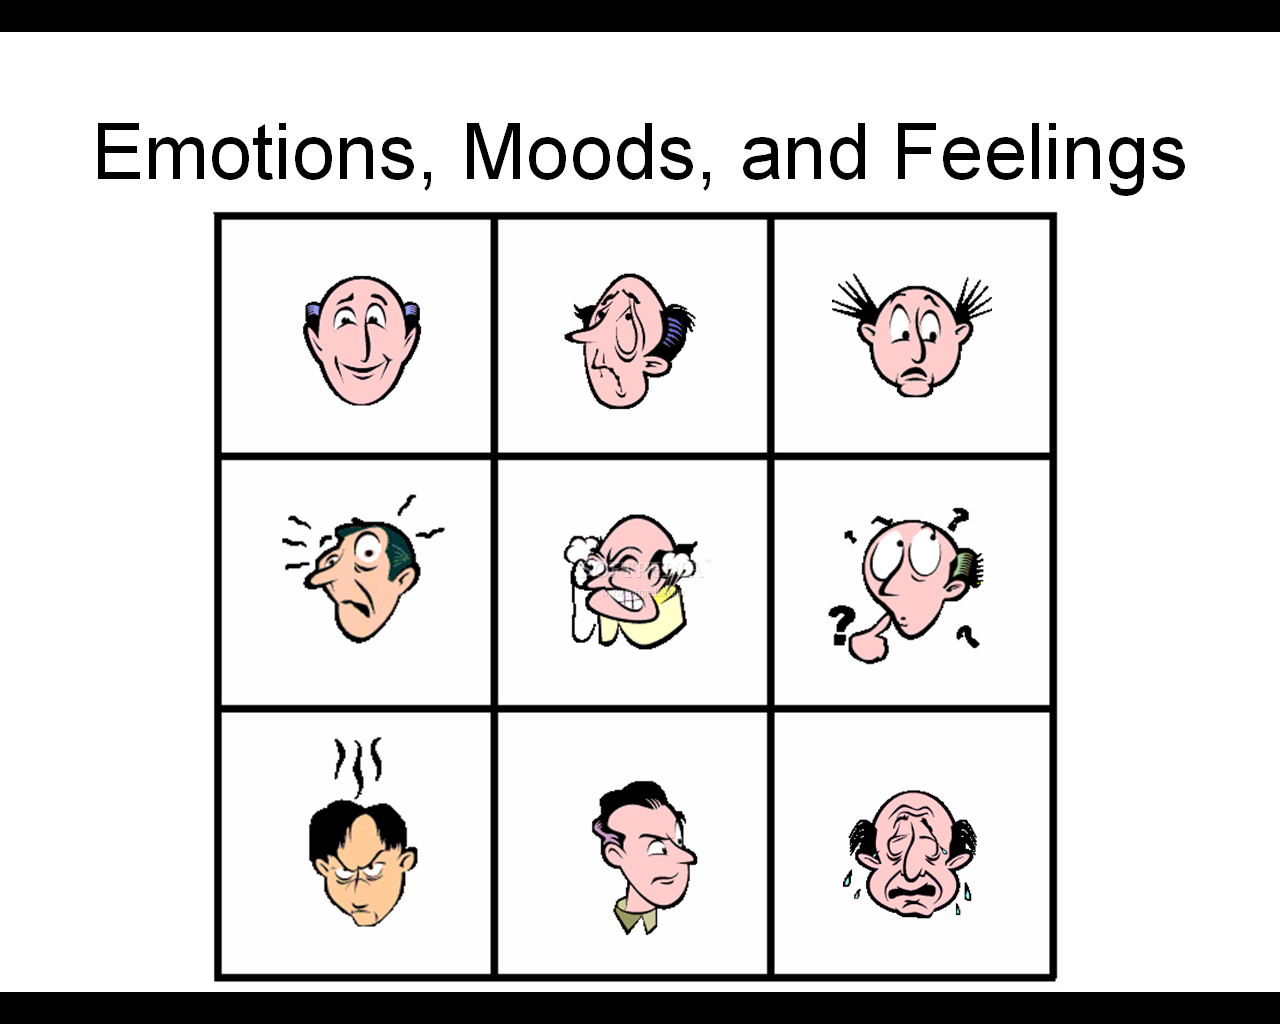 Emotions moods and feelings the main window presents the basic